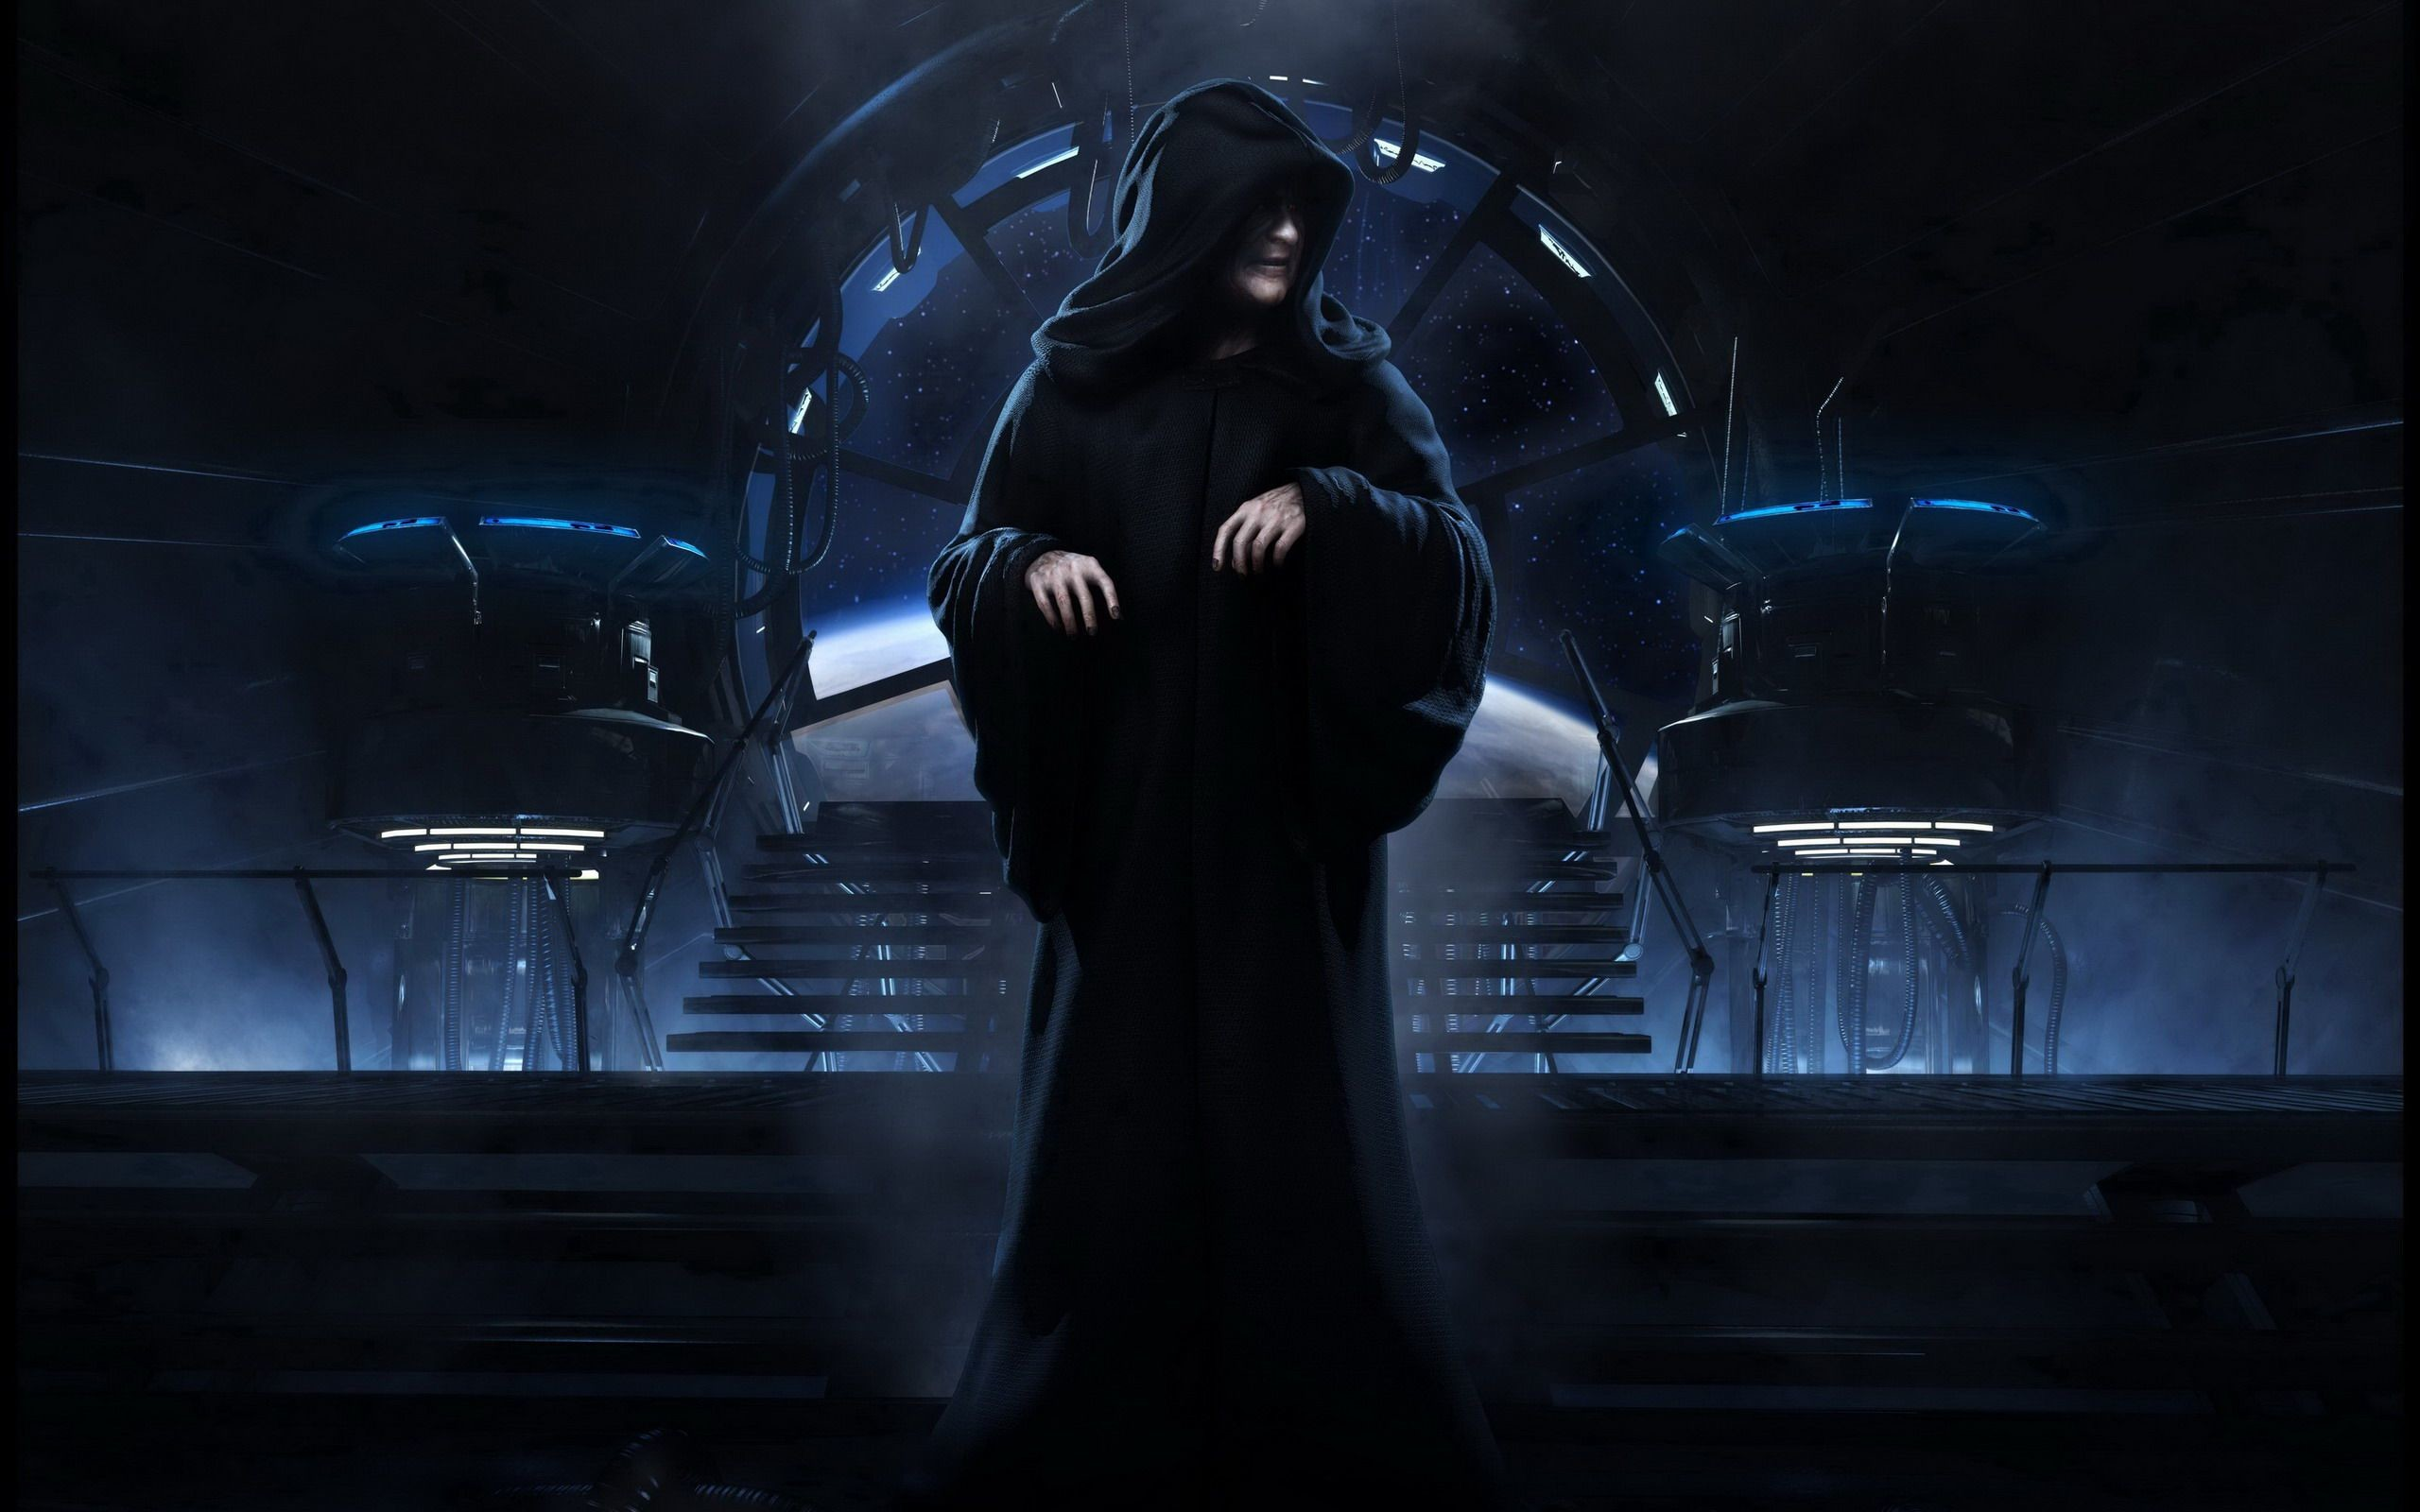 Star Wars Force Unleashed 2 Game #4188303, 2560×1600